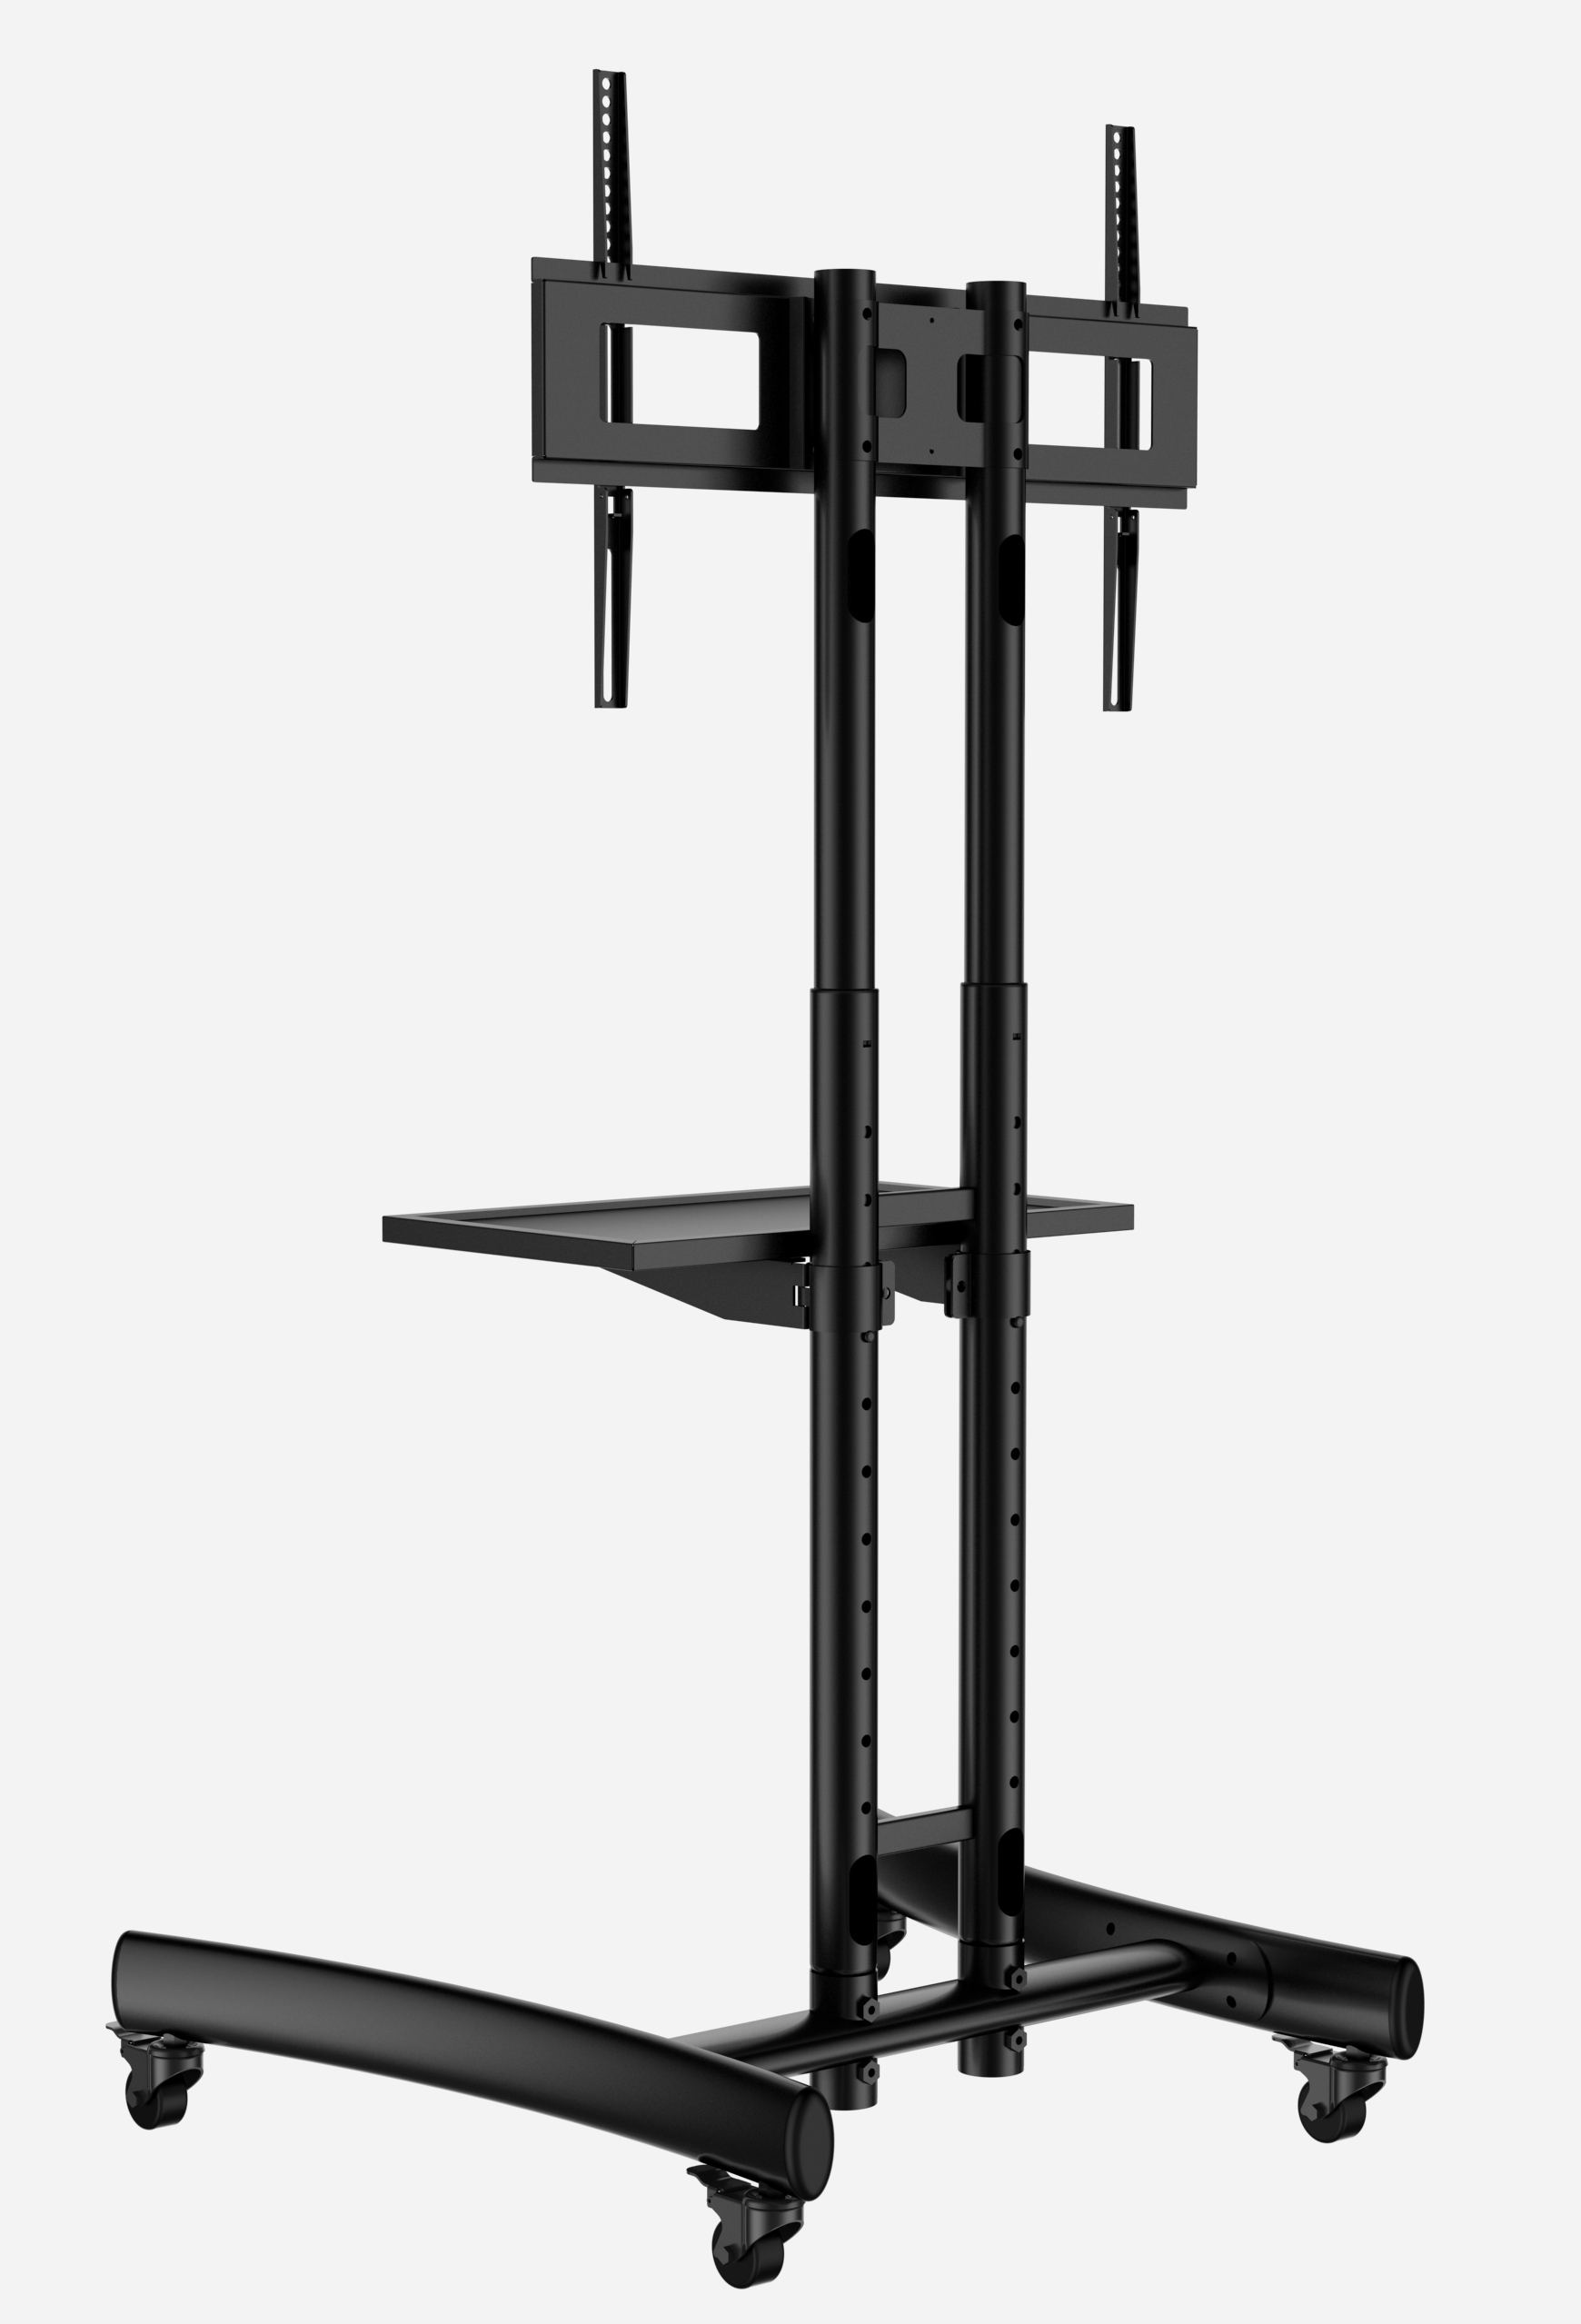 Rocelco Bstc Panel Stand